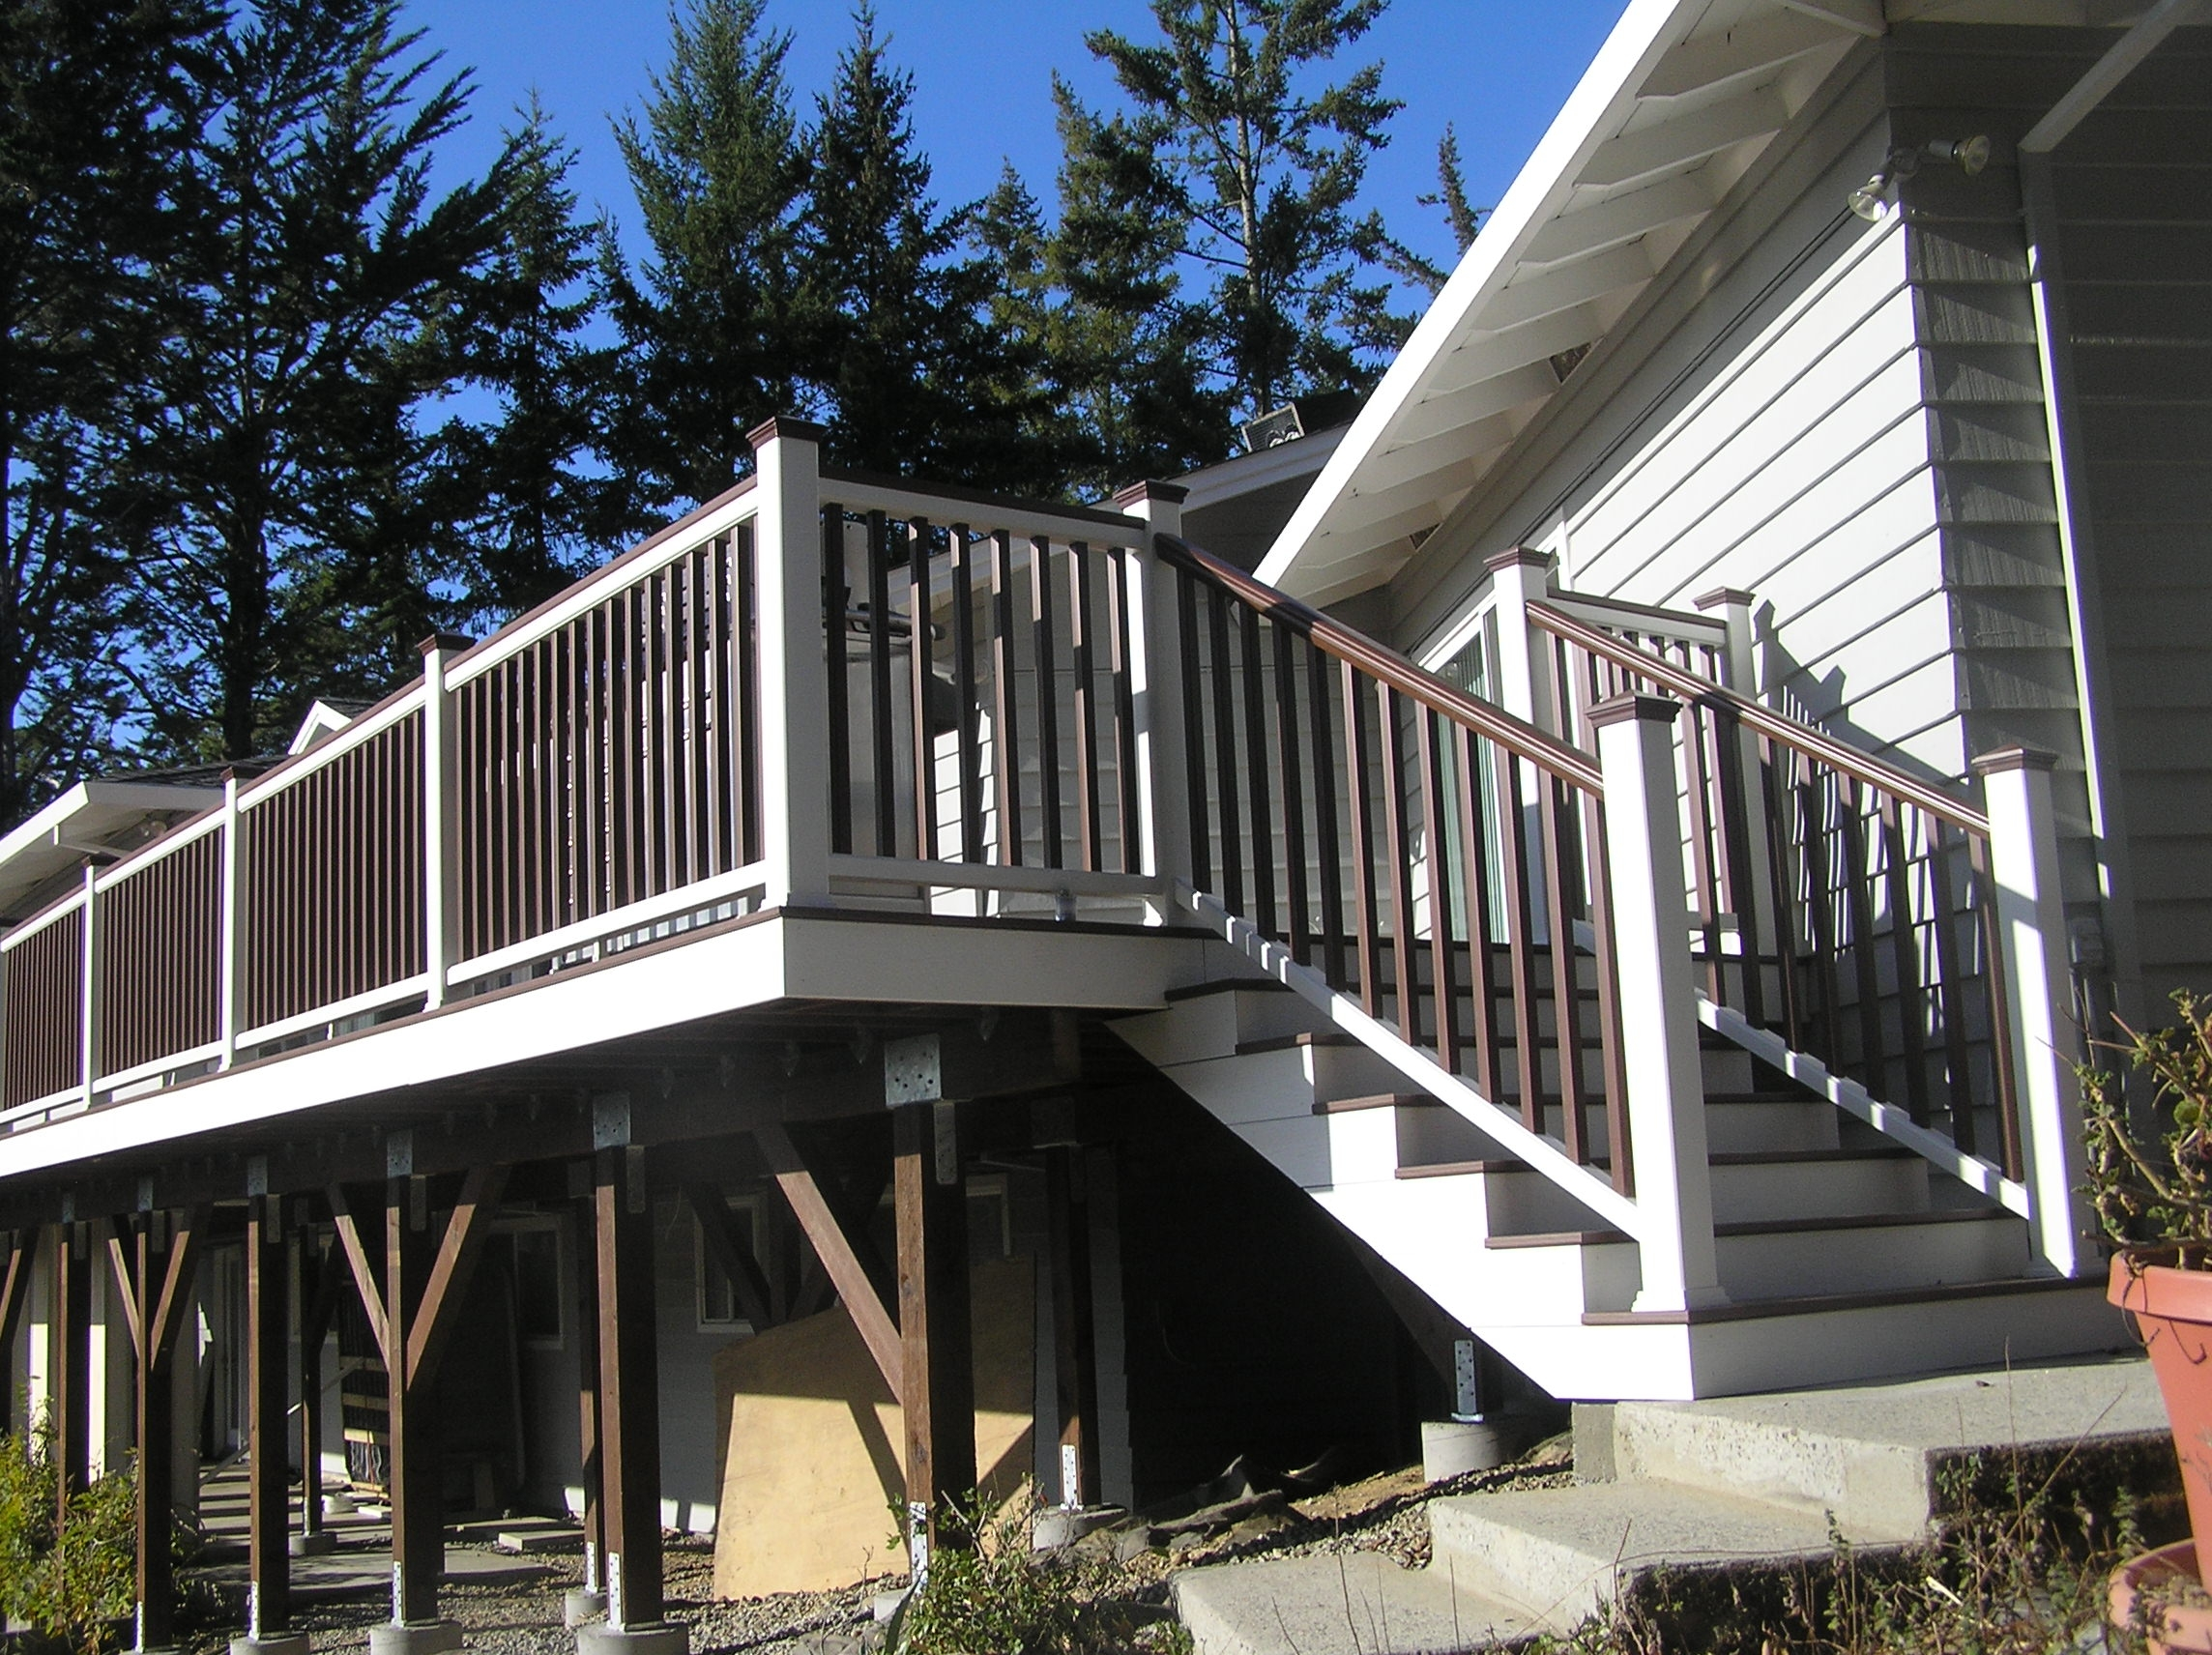 Attaching Bottom Deck Posts Thisiscarpentry | Attaching Handrail To Post | Spindles | Newel Post | Stair Handrail | Baluster | Rim Joist